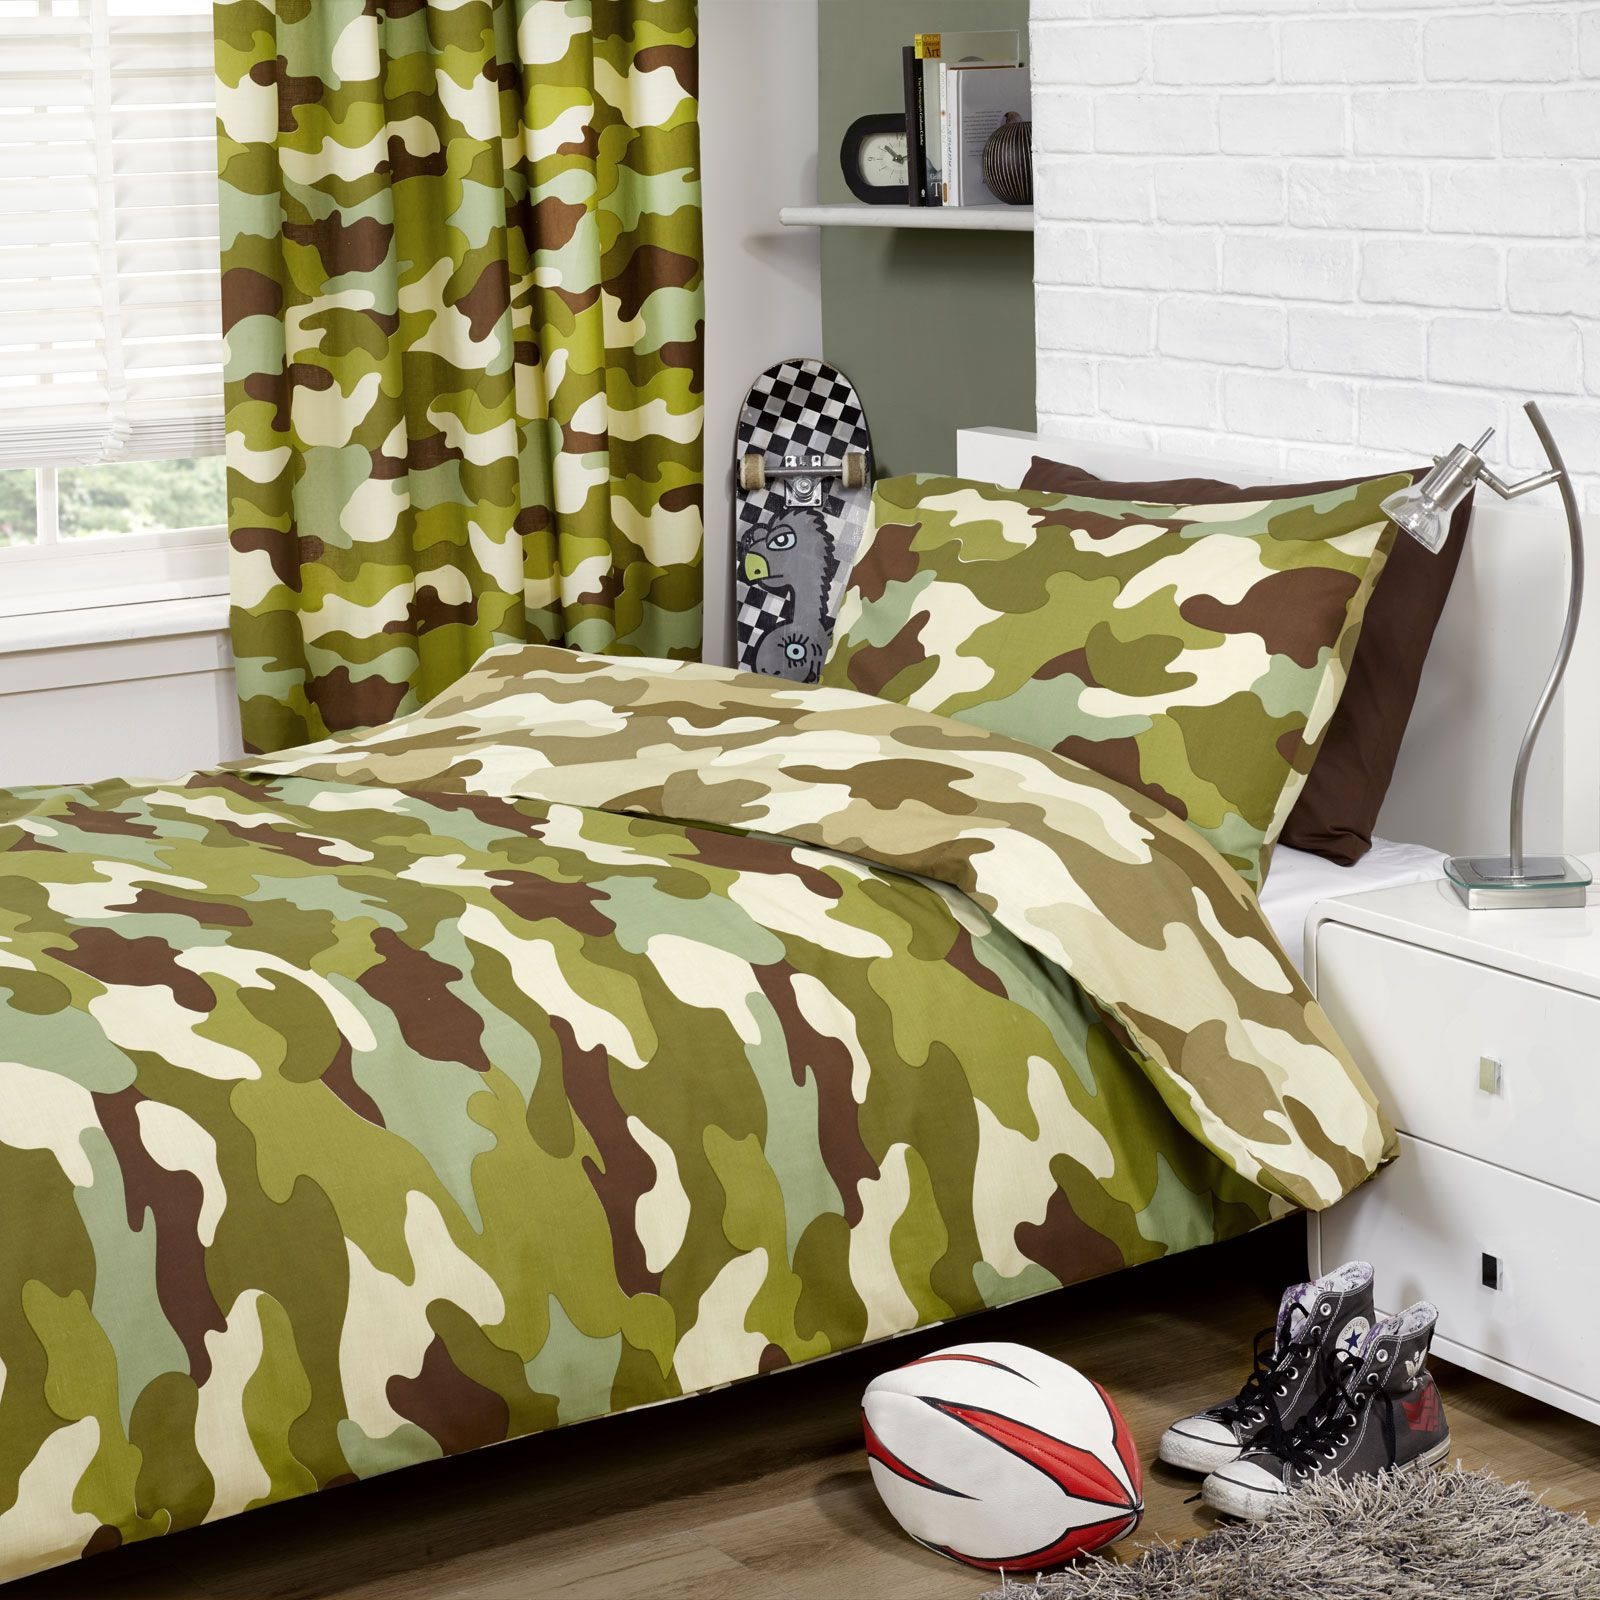 camouflage 66 x 72 lined curtains new army military boys